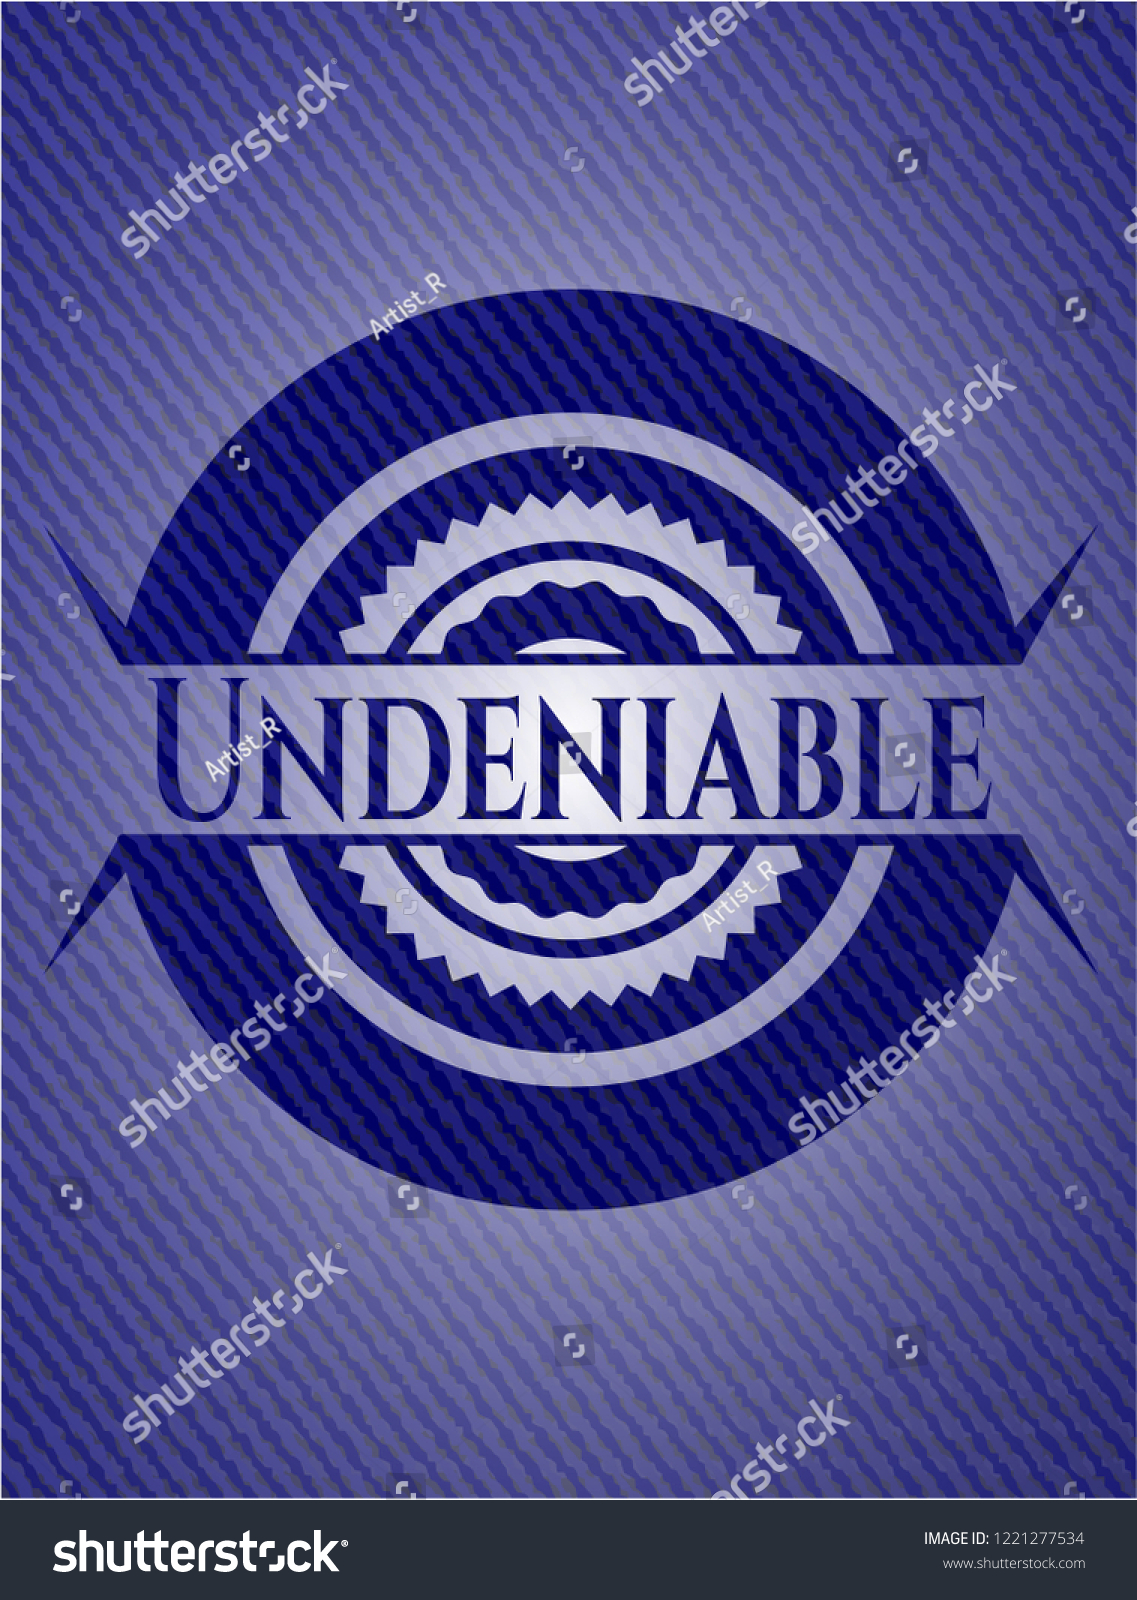 Undeniable Jean Background Stock Vector Royalty 1221277534 1137x1600